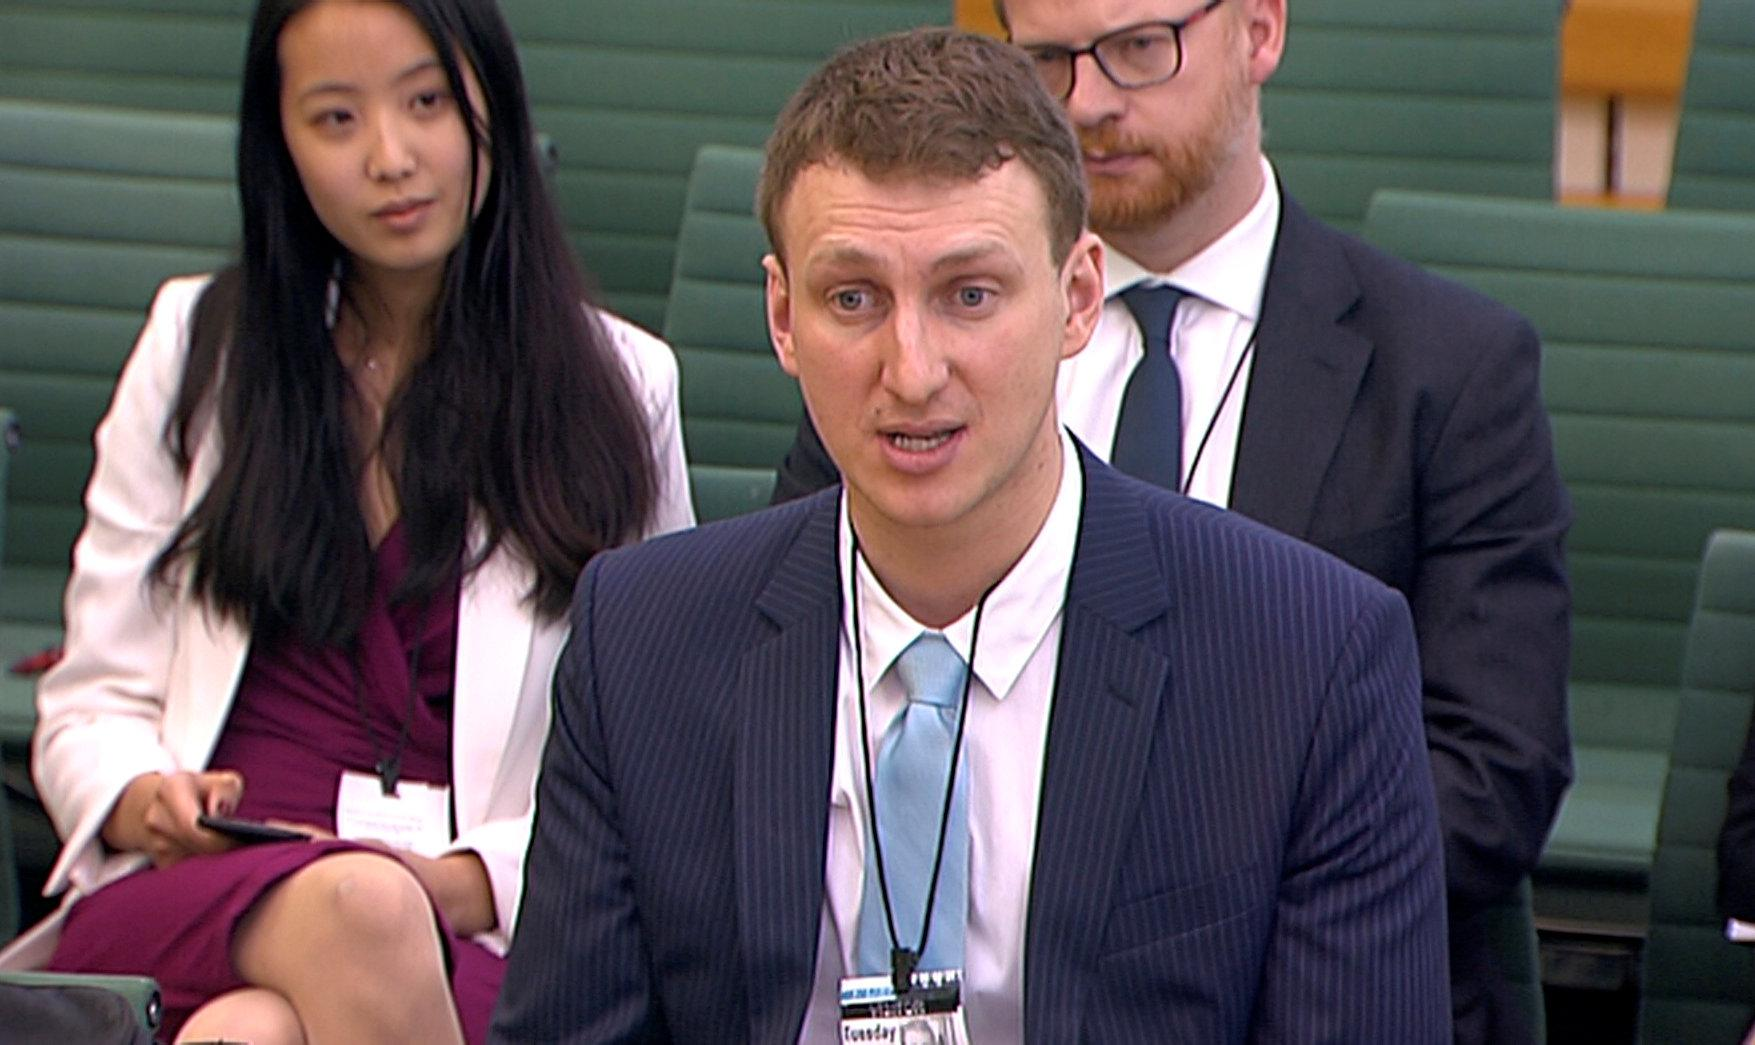 Aleksandr Kogan, a researcher at Cambridge University who created a personality quiz to collect users data on Facebook, gives evidence to Parliament's Digital, Culture, Media and Sport committe in Westminster, London, Britain, April 24, 2018. Parliament TV handout via